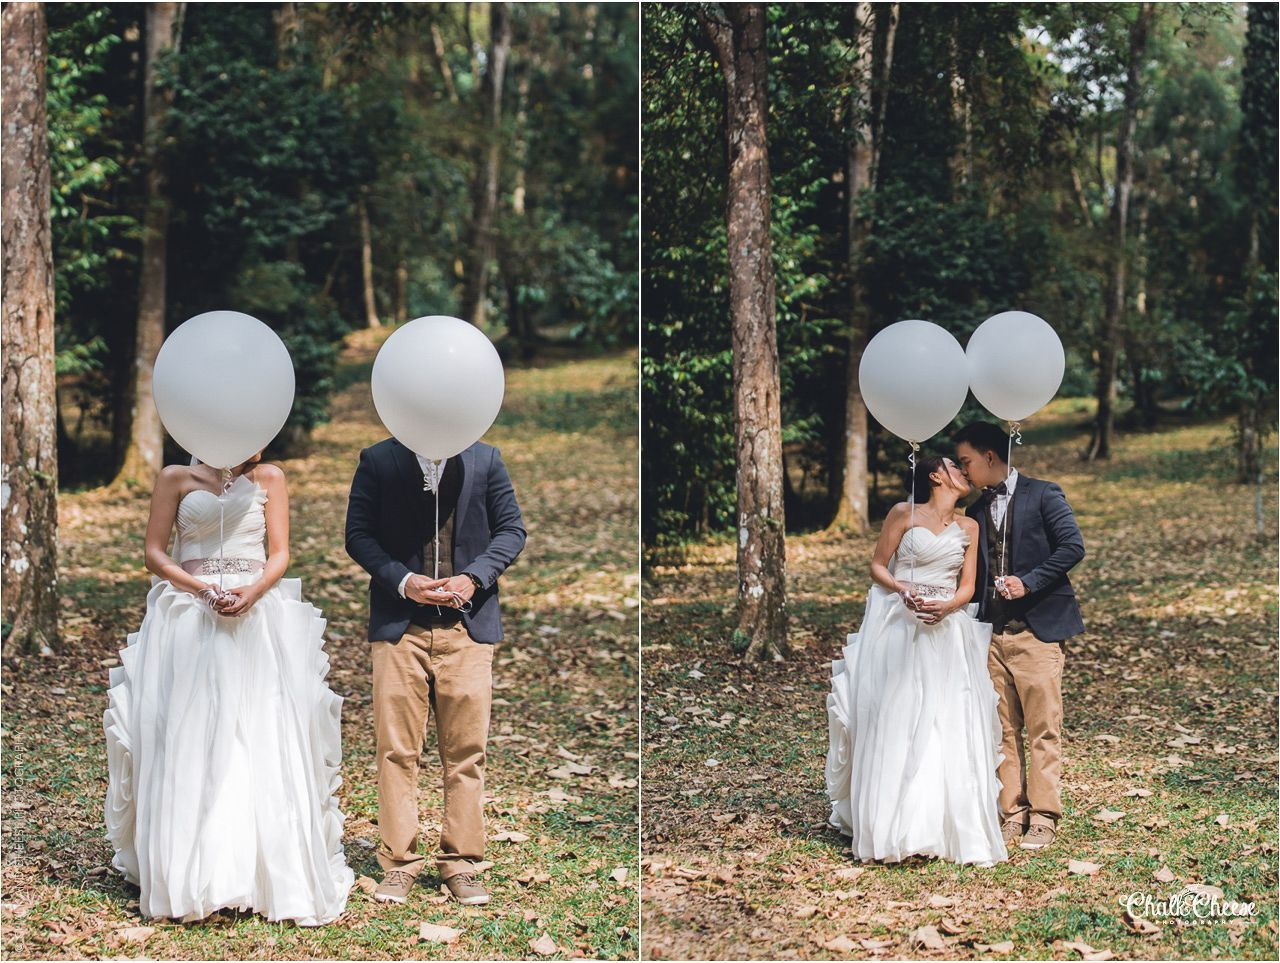 Balloons themed Pre Wedding Session at FRIM Tropical